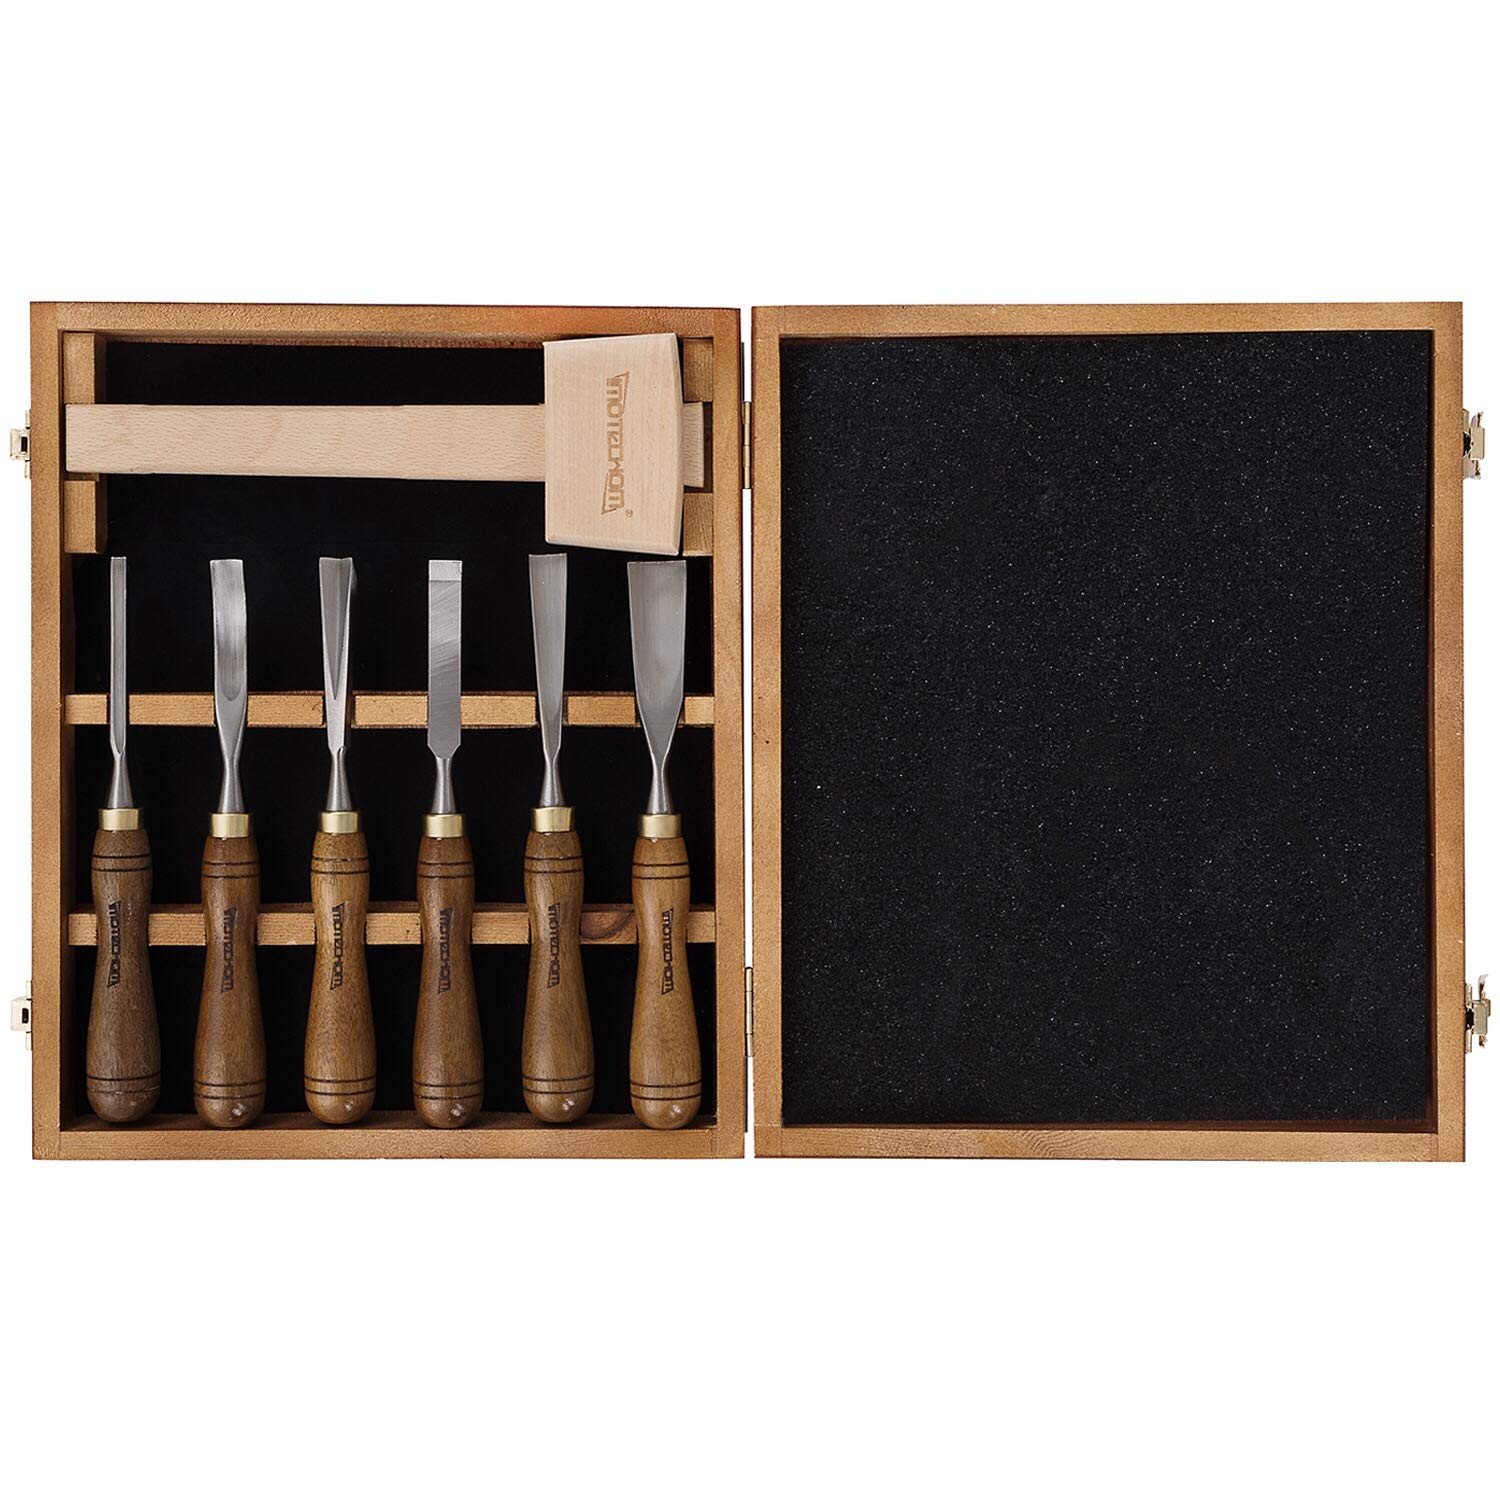 IMOTECHOM 7-Pieces Woodworking Wood Carving Tools Chisel Set with Walnut Handle, Beech Wood Mallet Hammer, Wooden Storage Case by IMOTECHOM